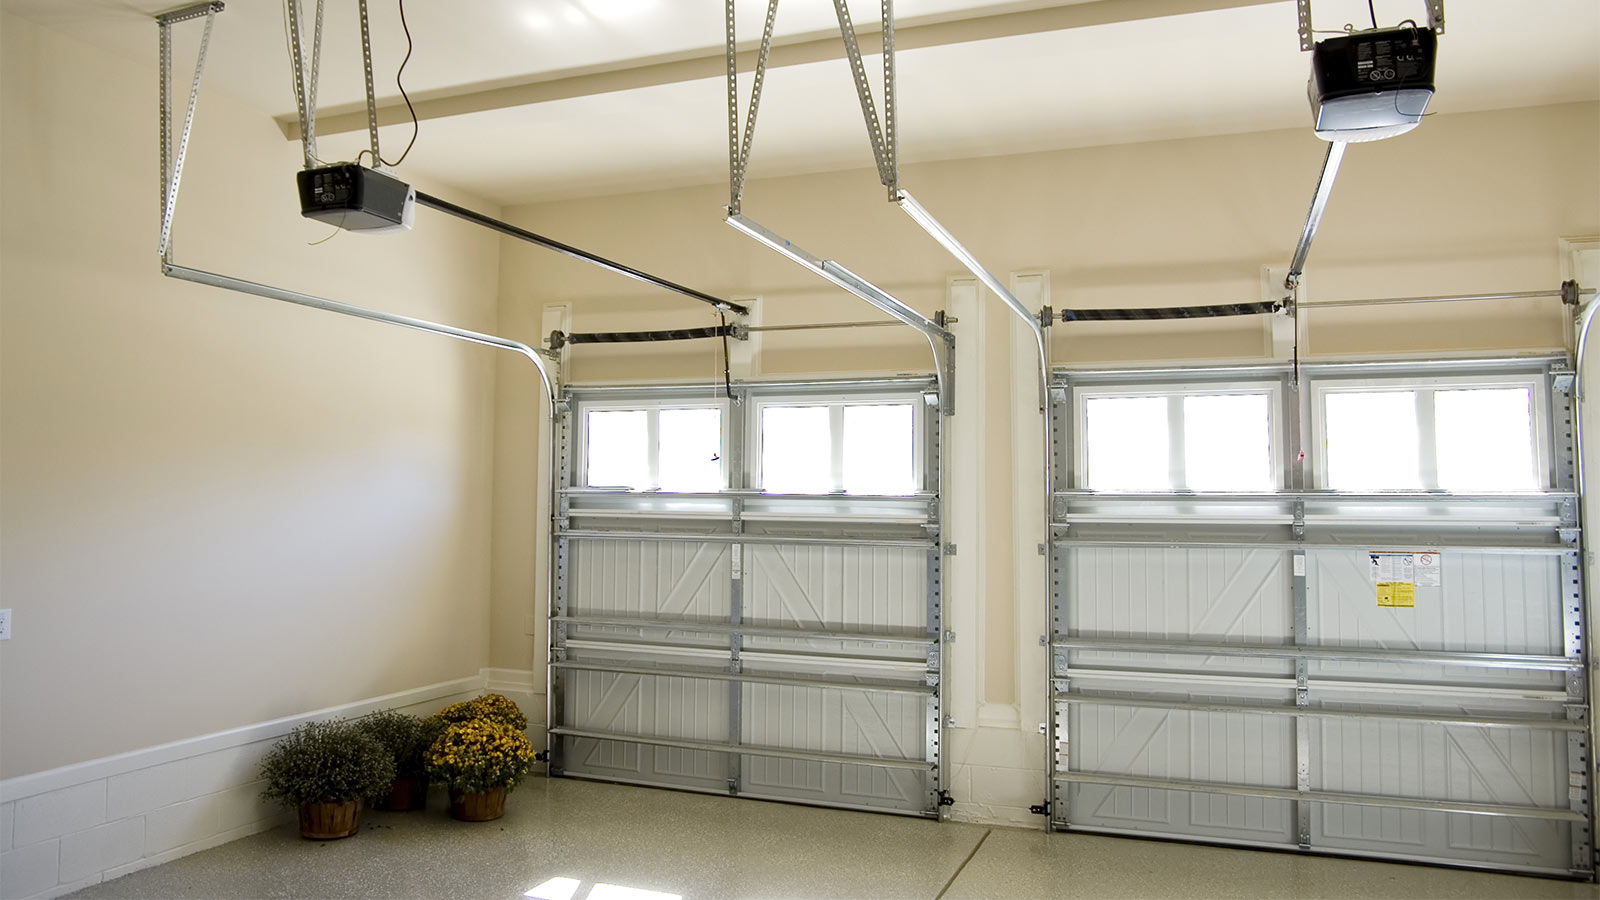 Sectional Garage Doors from Electric Gates East London suppliers.